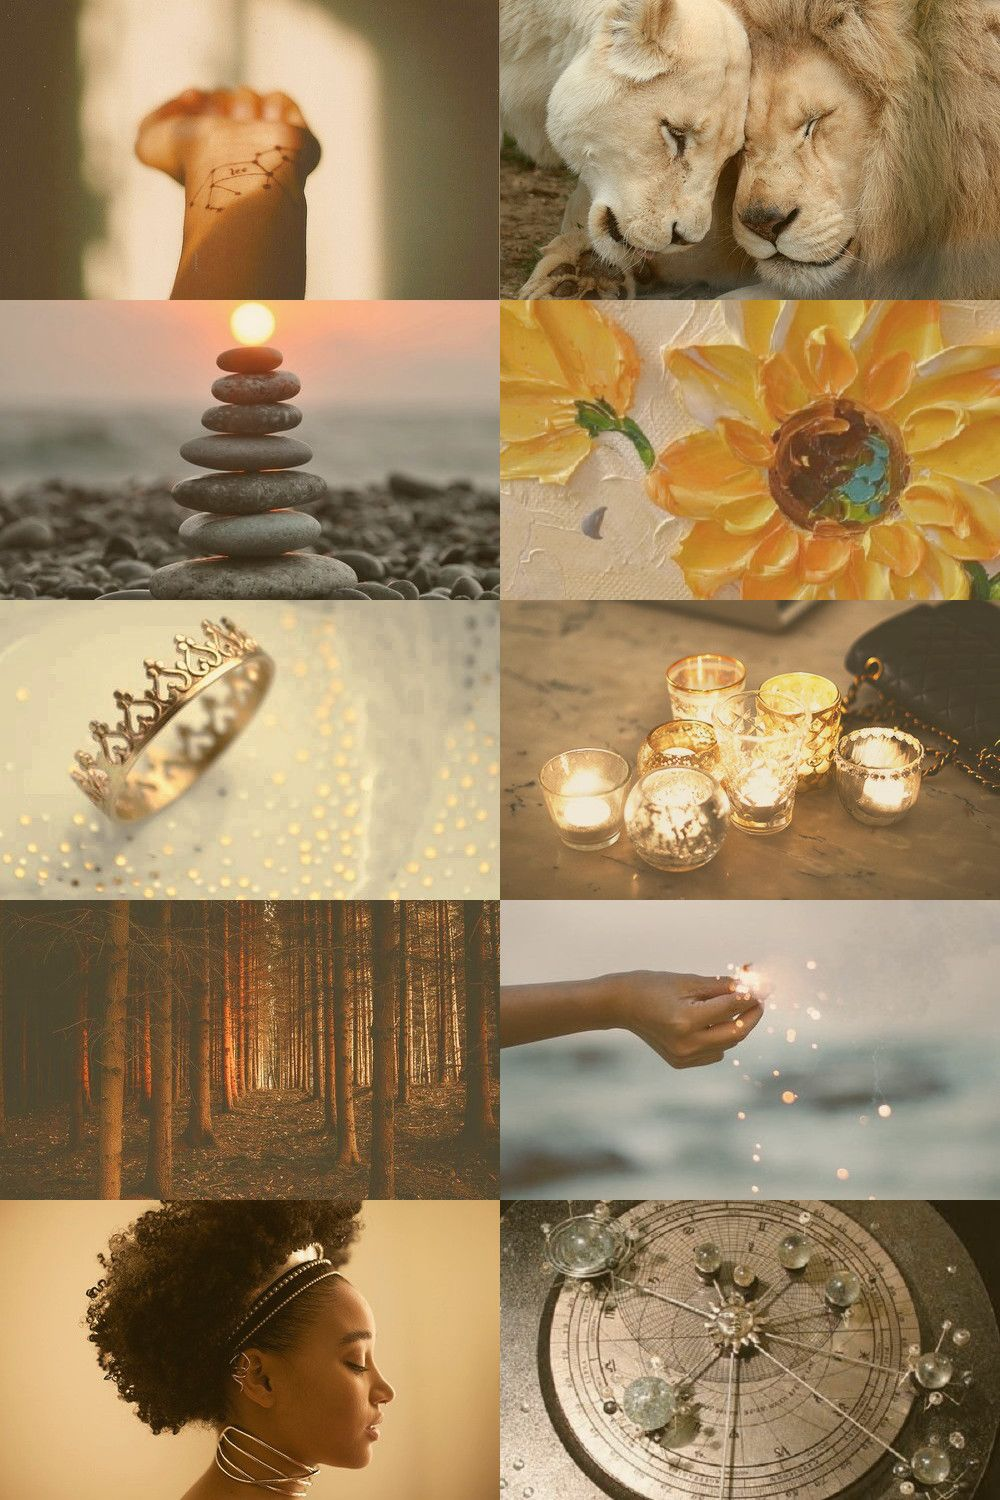 Horoscope Leo Pt 1 Day Aesthetic Collage Witch Aesthetic Aesthetic Wallpapers